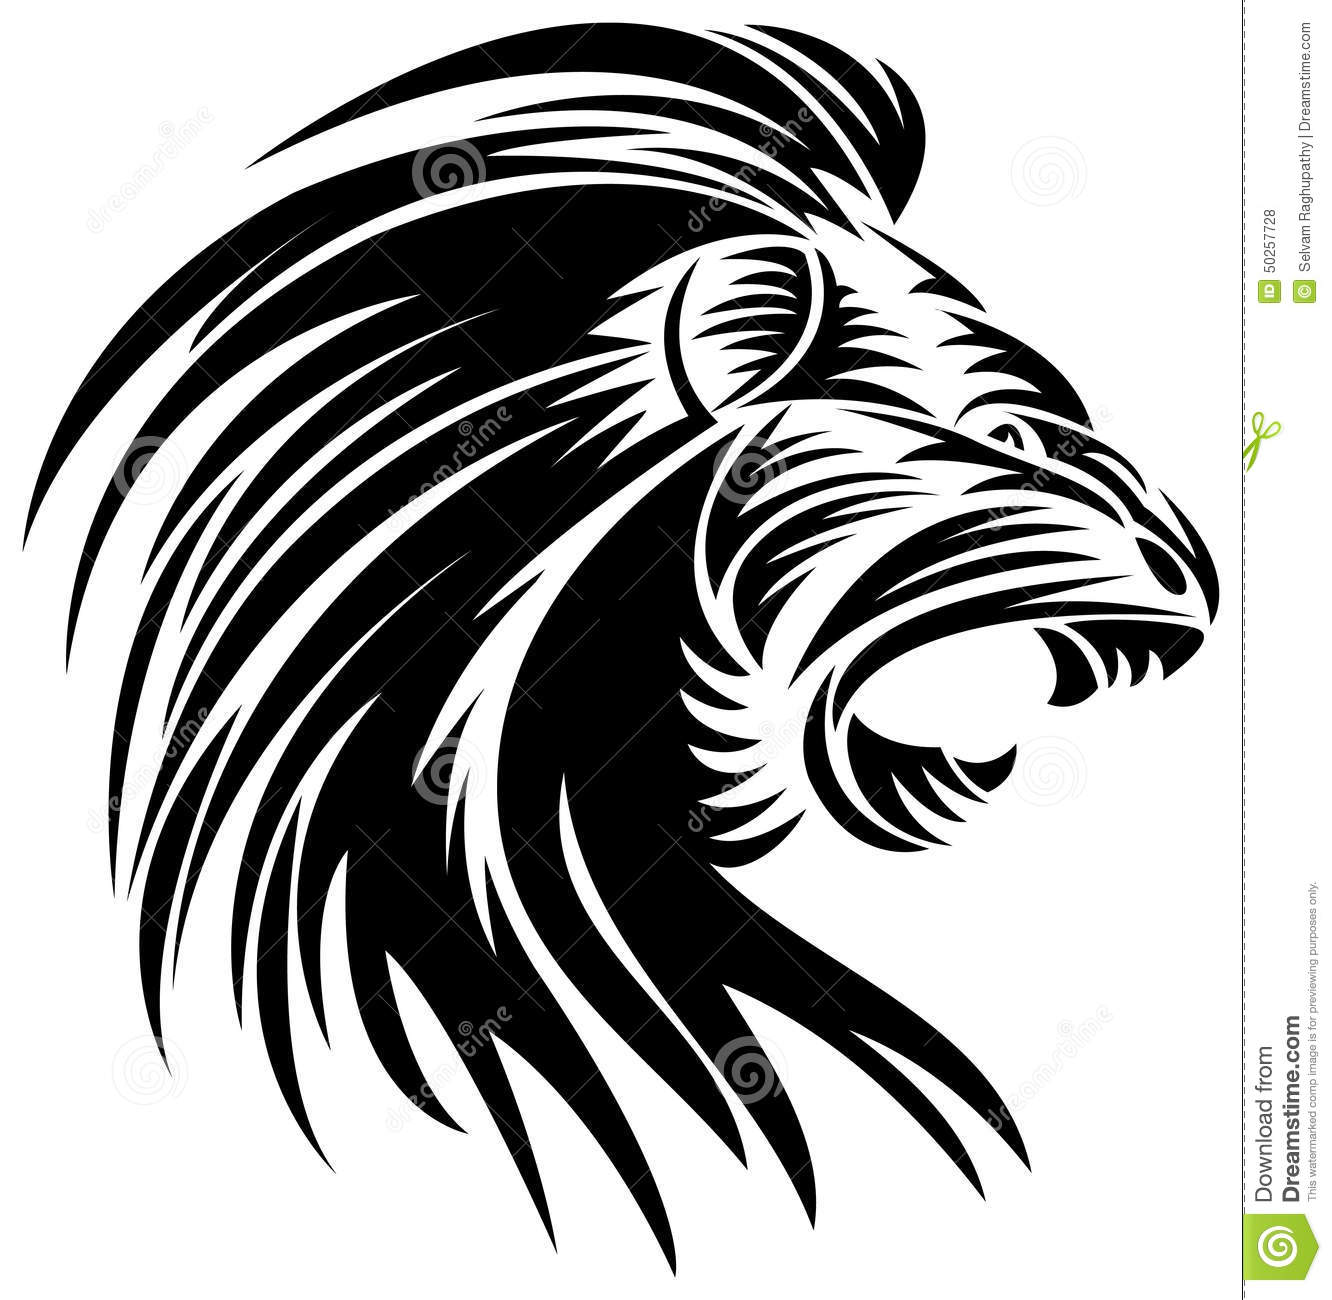 Line Art Media Design : Angry lion stock vector illustration of emblem line